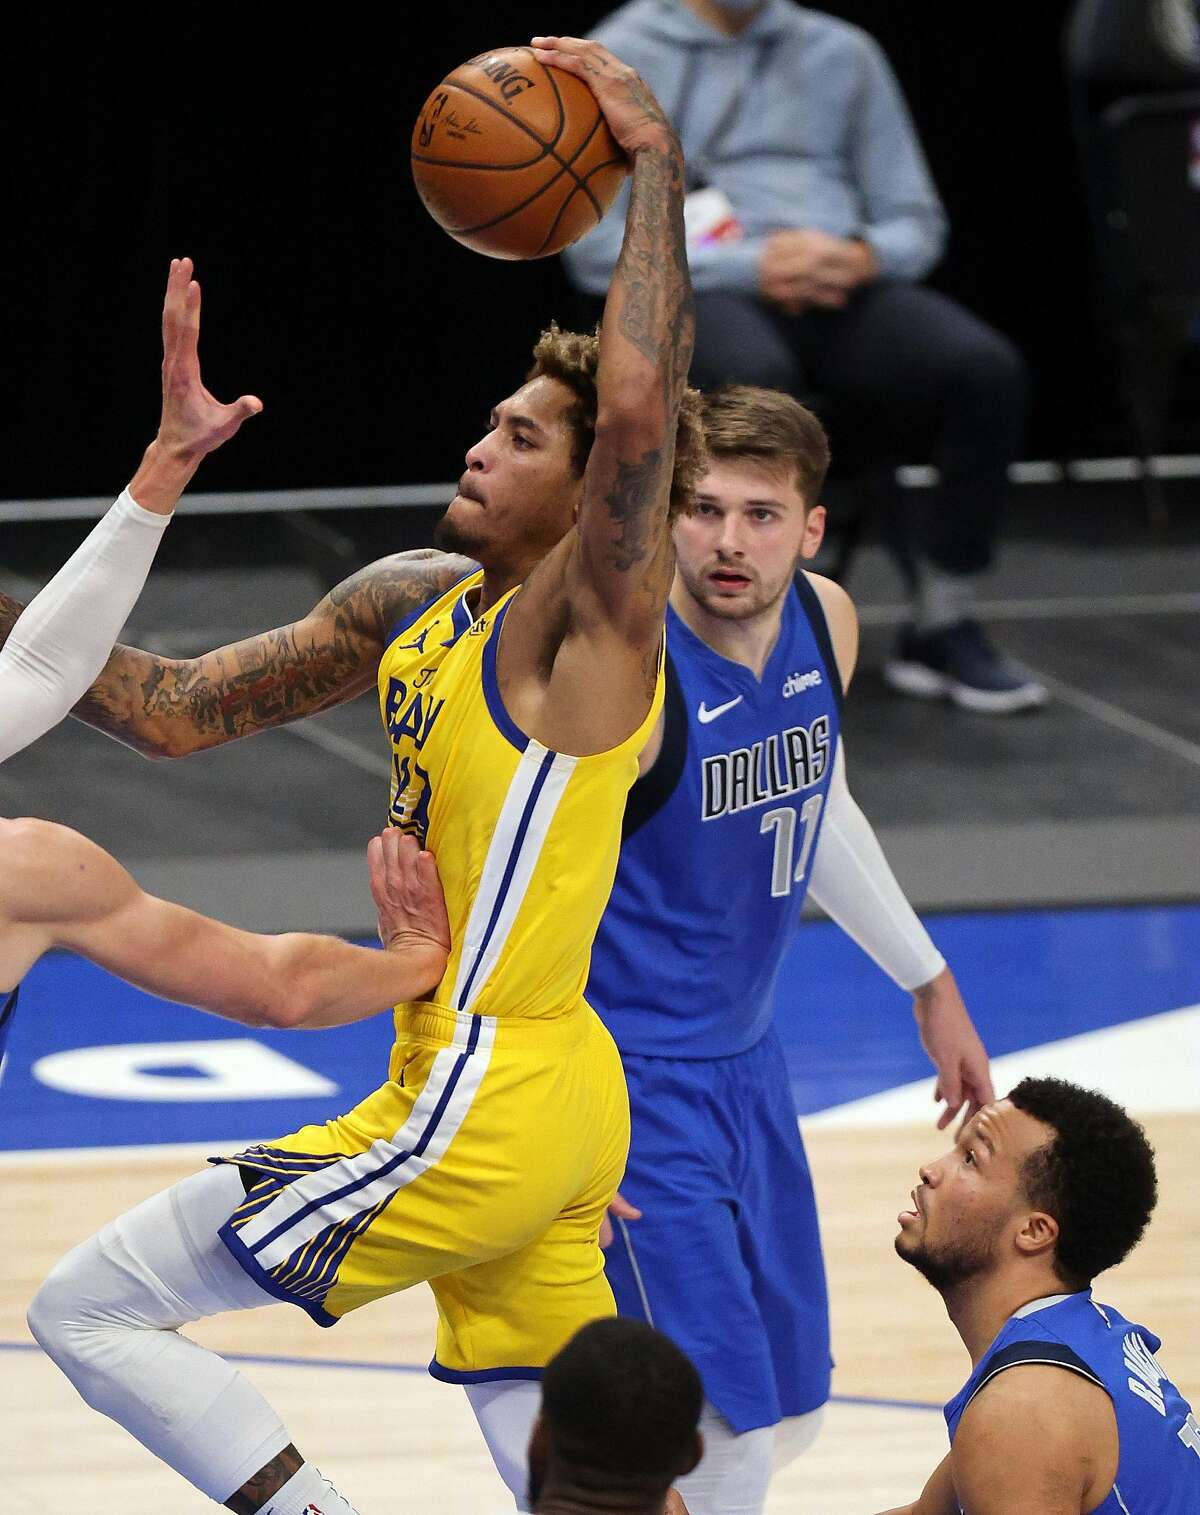 DALLAS, TEXAS - FEBRUARY 04: Kelly Oubre Jr. #12 of the Golden State Warriors takes a shot against the Dallas Mavericks in the third quarter at American Airlines Center on February 04, 2021 in Dallas, Texas. NOTE TO USER: User expressly acknowledges and agrees that, by downloading and/or using this Photograph, User is consenting to the terms and conditions of the Getty Images License Agreement. (Photo by Ronald Martinez/Getty Images)